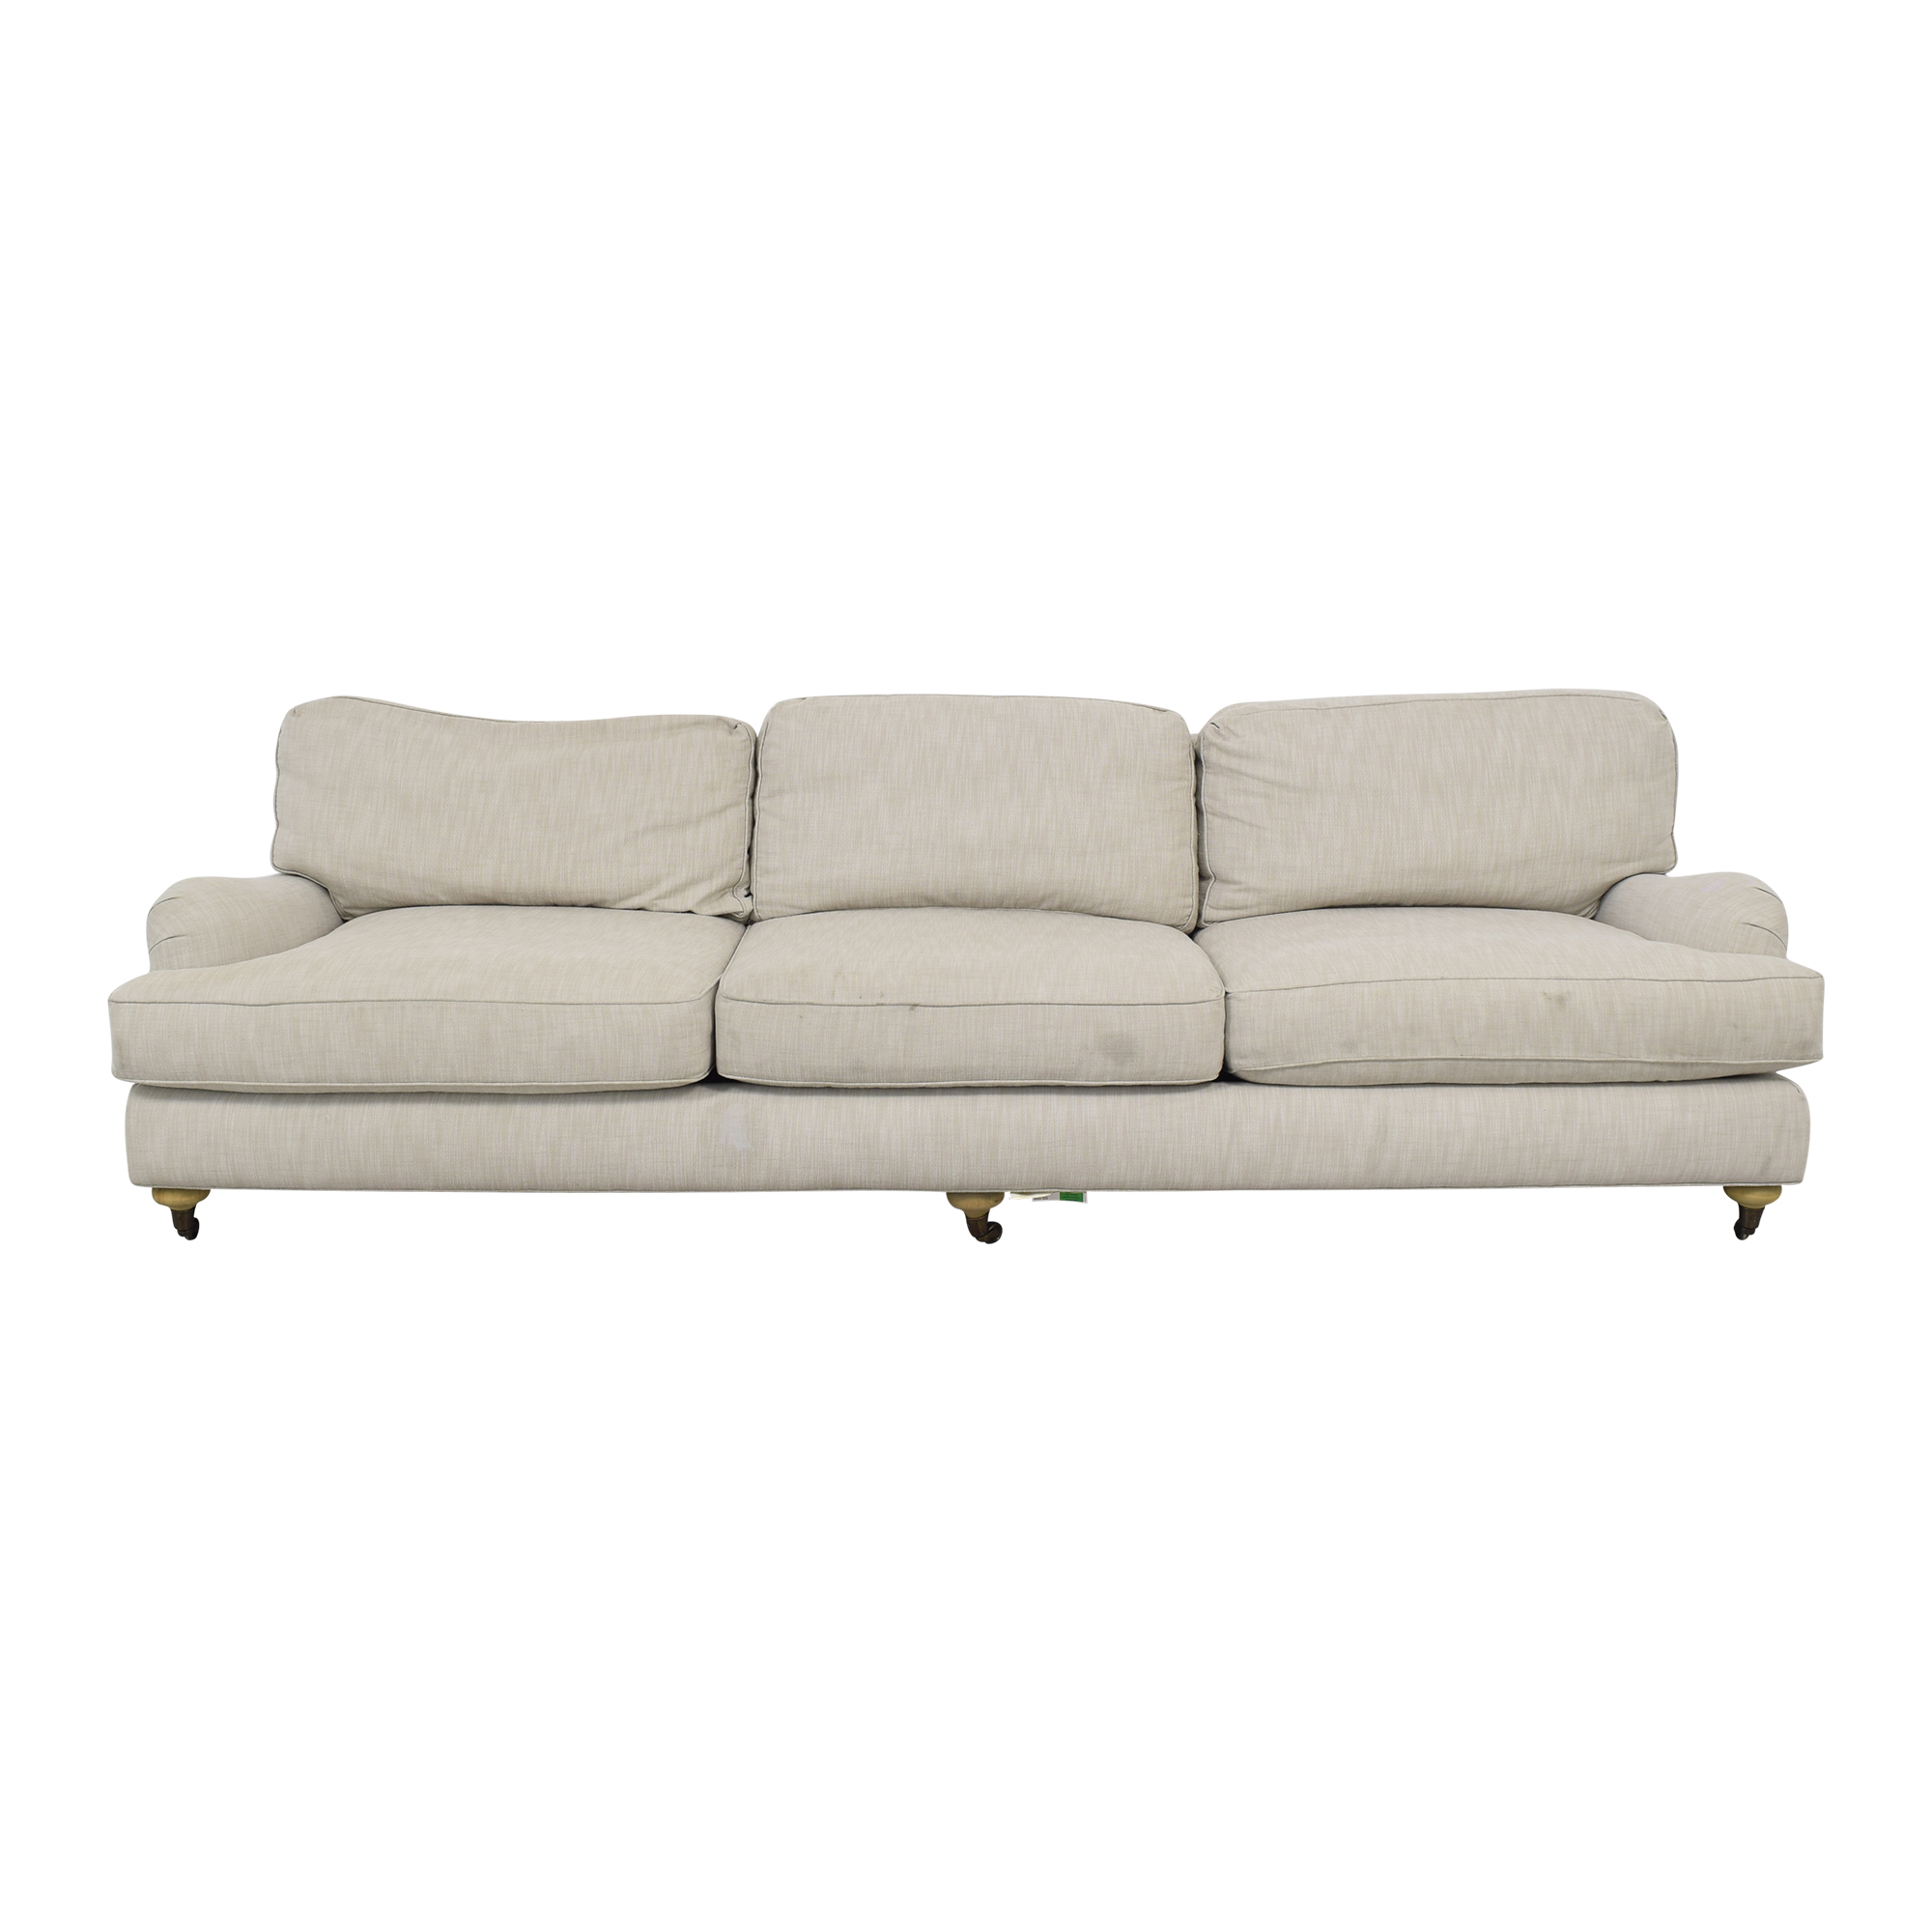 Restoration Hardware English Roll Arm Sofa Restoration Hardware